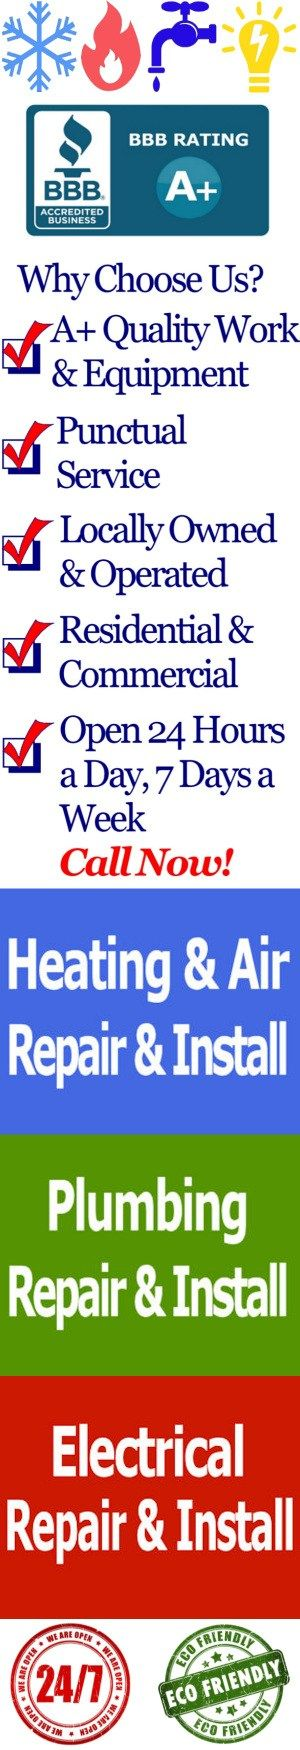 Dallas TX AC Repair by A#1 Air #dallas #tx #ac #repair,a#1 #air http://kenya.nef2.com/dallas-tx-ac-repair-by-a1-air-dallas-tx-ac-repaira1-air/  # Dallas TX AC Repair Is your home or business feeling a little warm and stuffy these days in spite of you're a/c unit? Call A#1 Air s Dallas TX AC Repair team to quickly get your HVAC running right by providing you with repair or replacement service for you're a/c unit, compressor, dehumidifier, or air filter system. 24/7 Emergency AC Repair in…